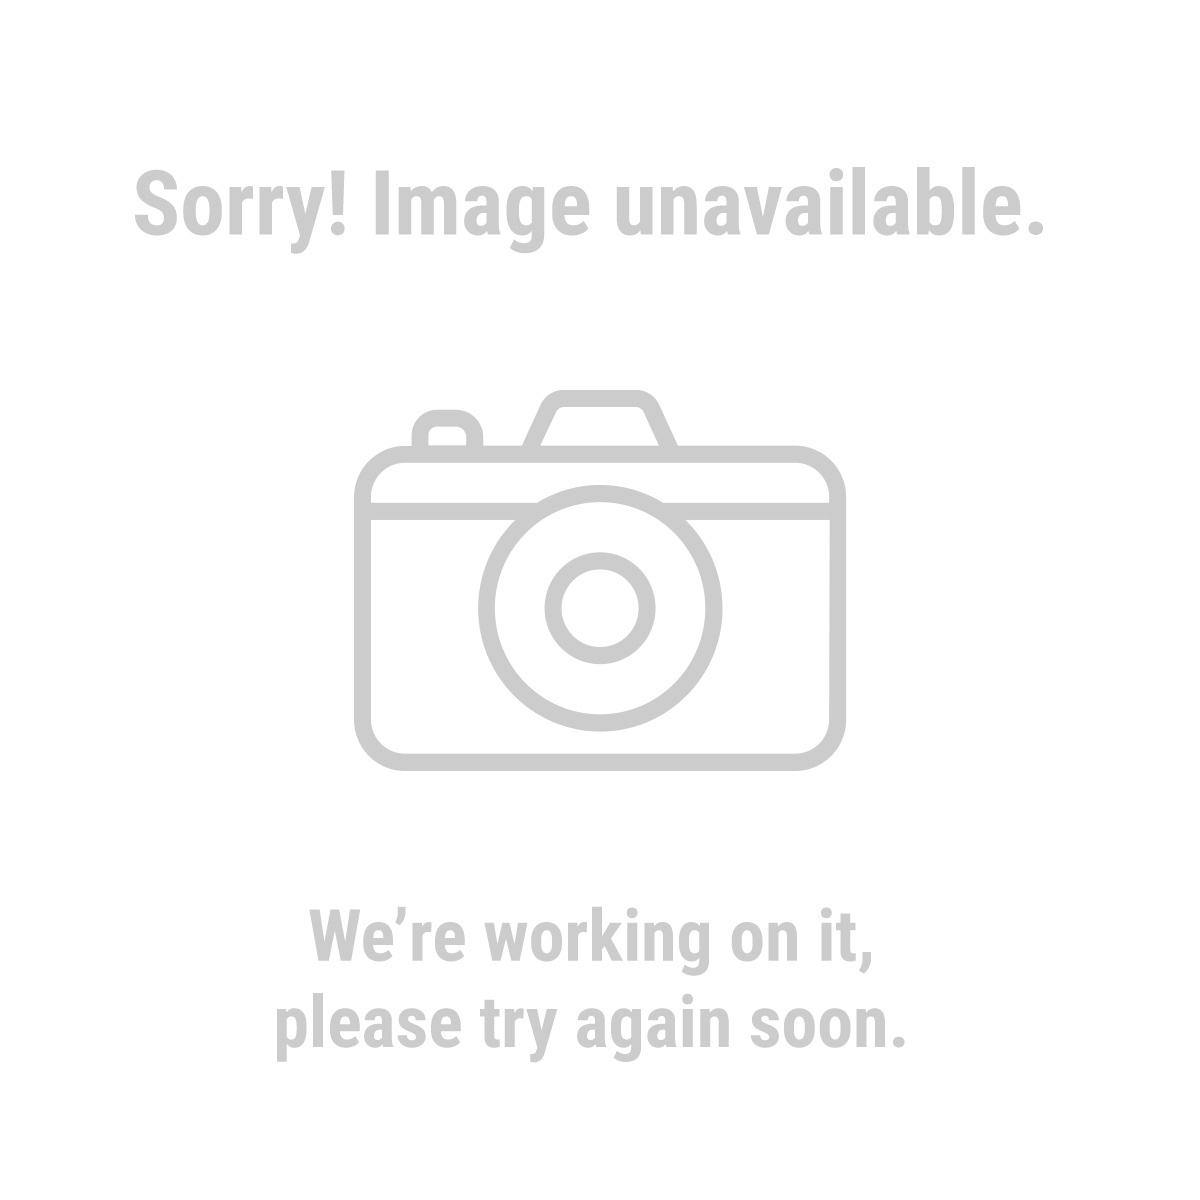 67076 Adjustable Cable Tie Gun